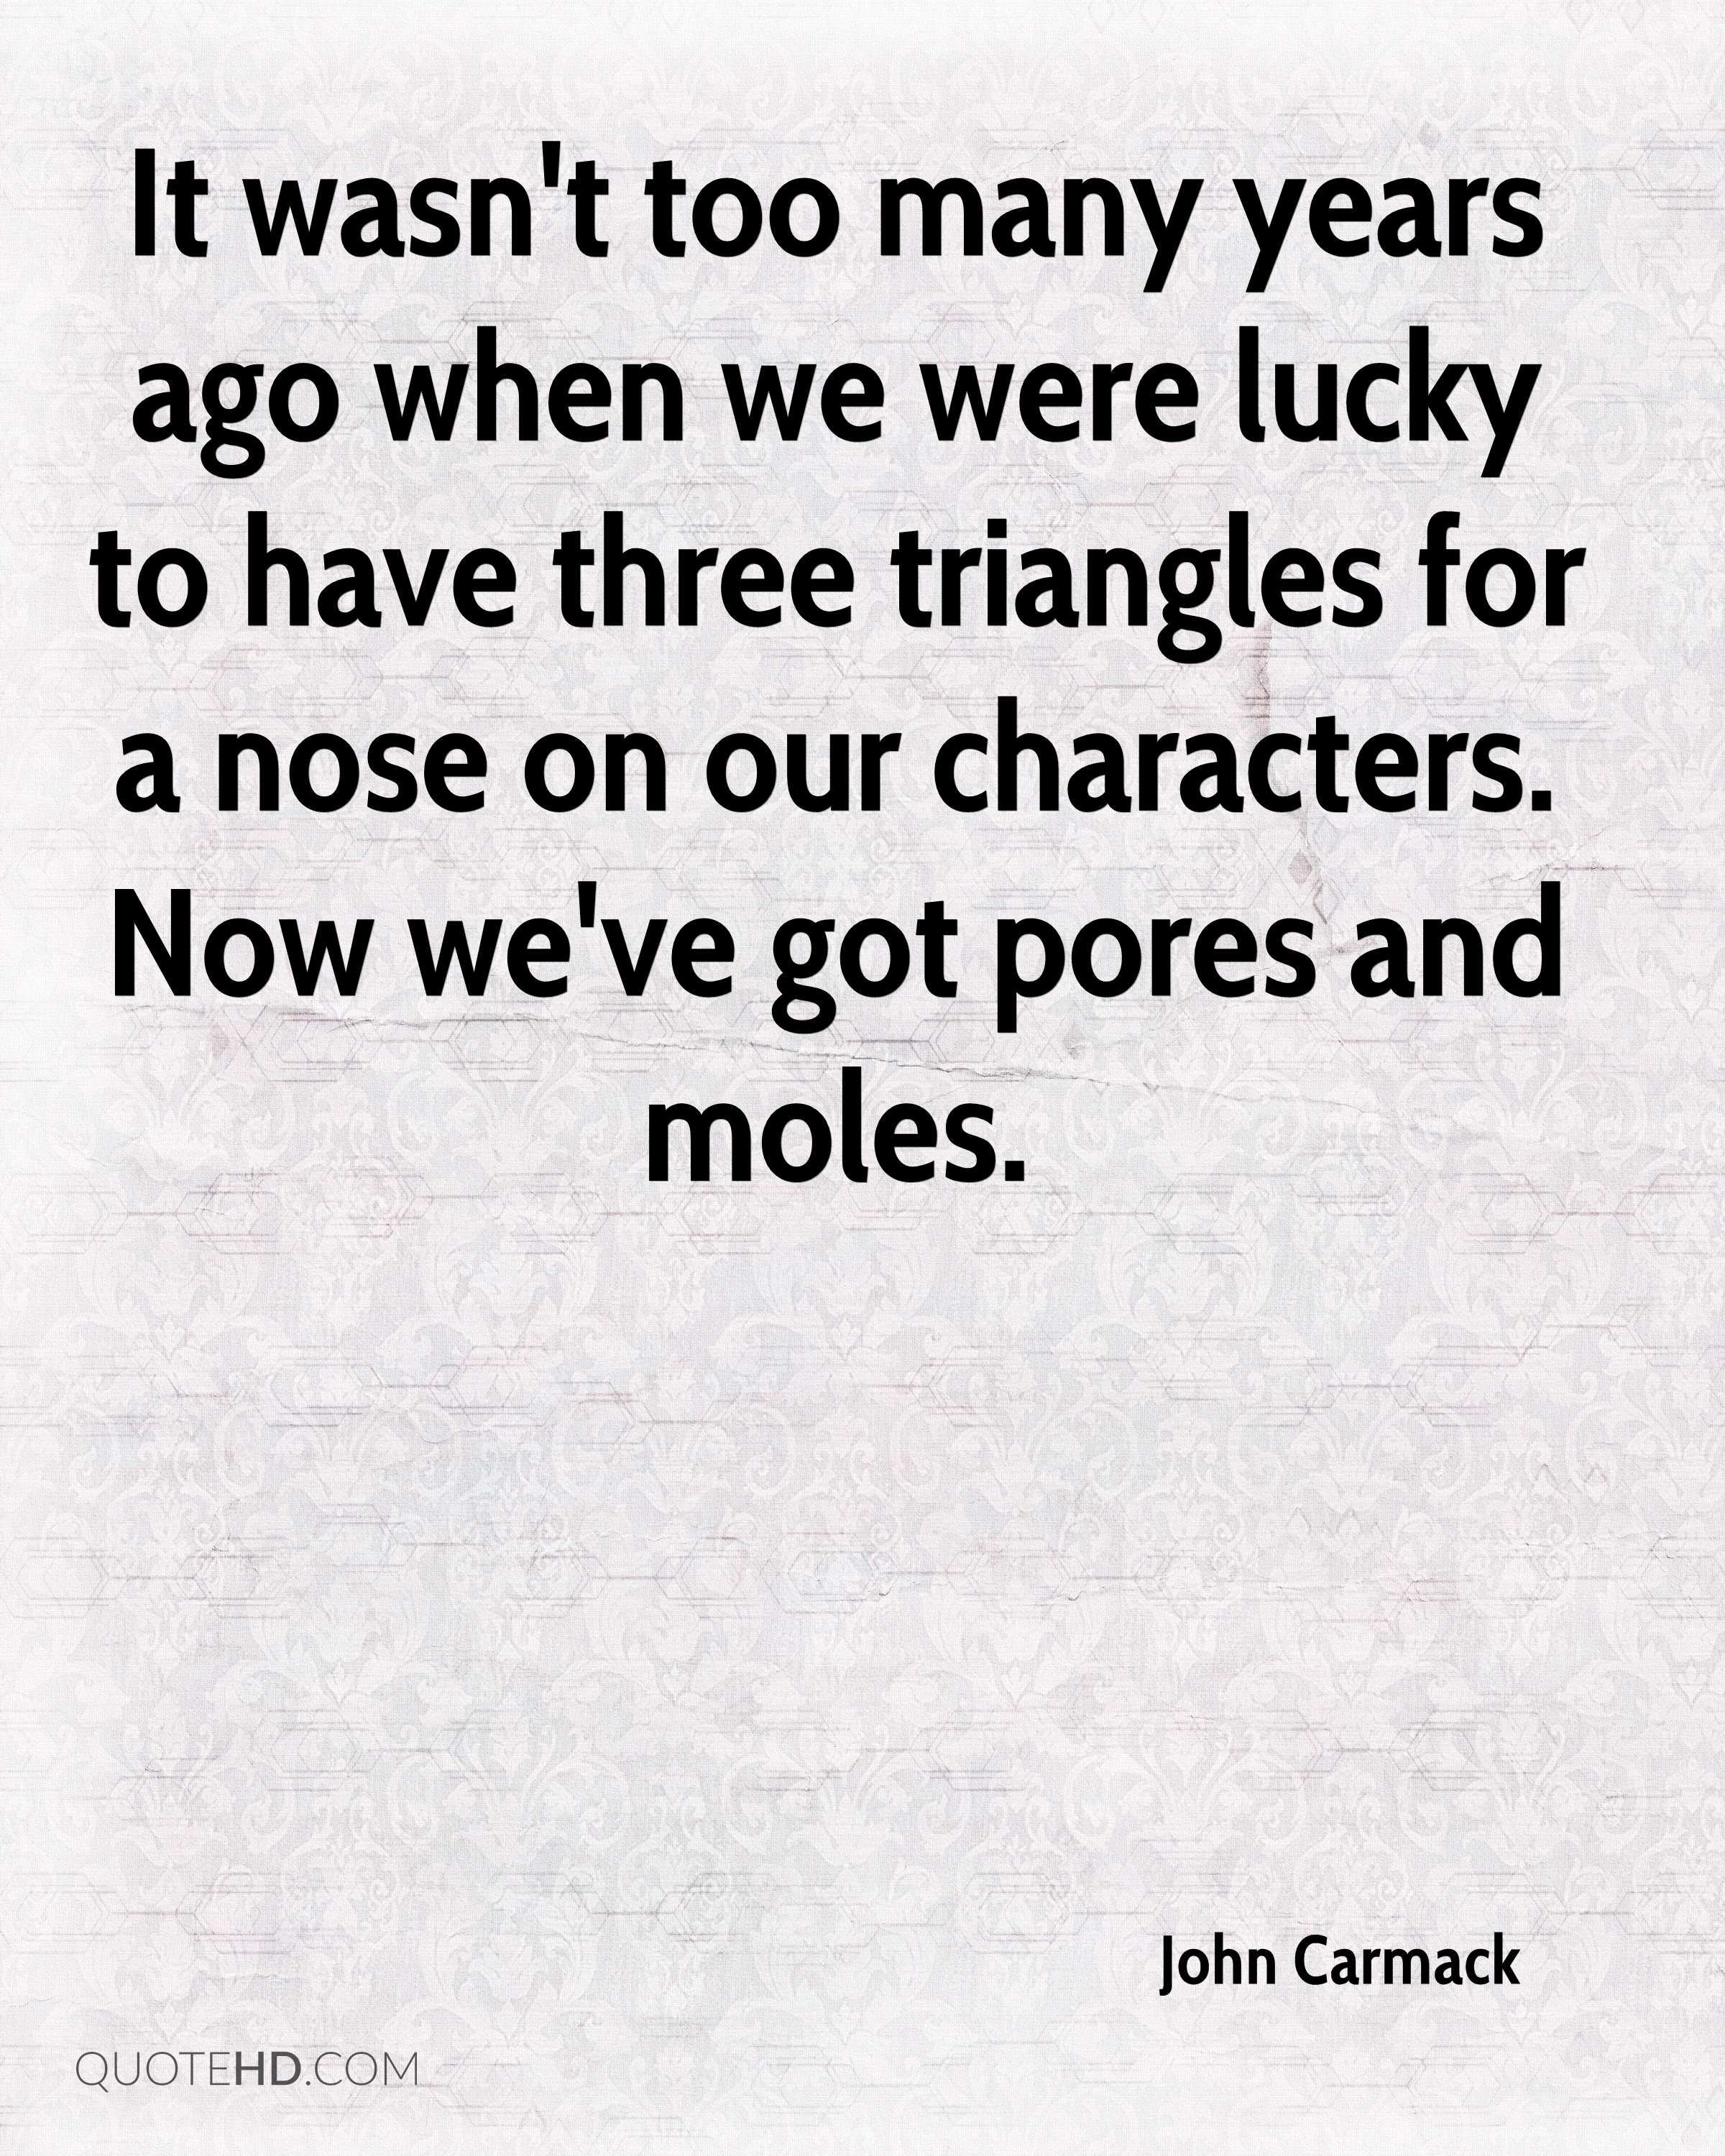 It wasn't too many years ago when we were lucky to have three triangles for a nose on our characters. Now we've got pores and moles.